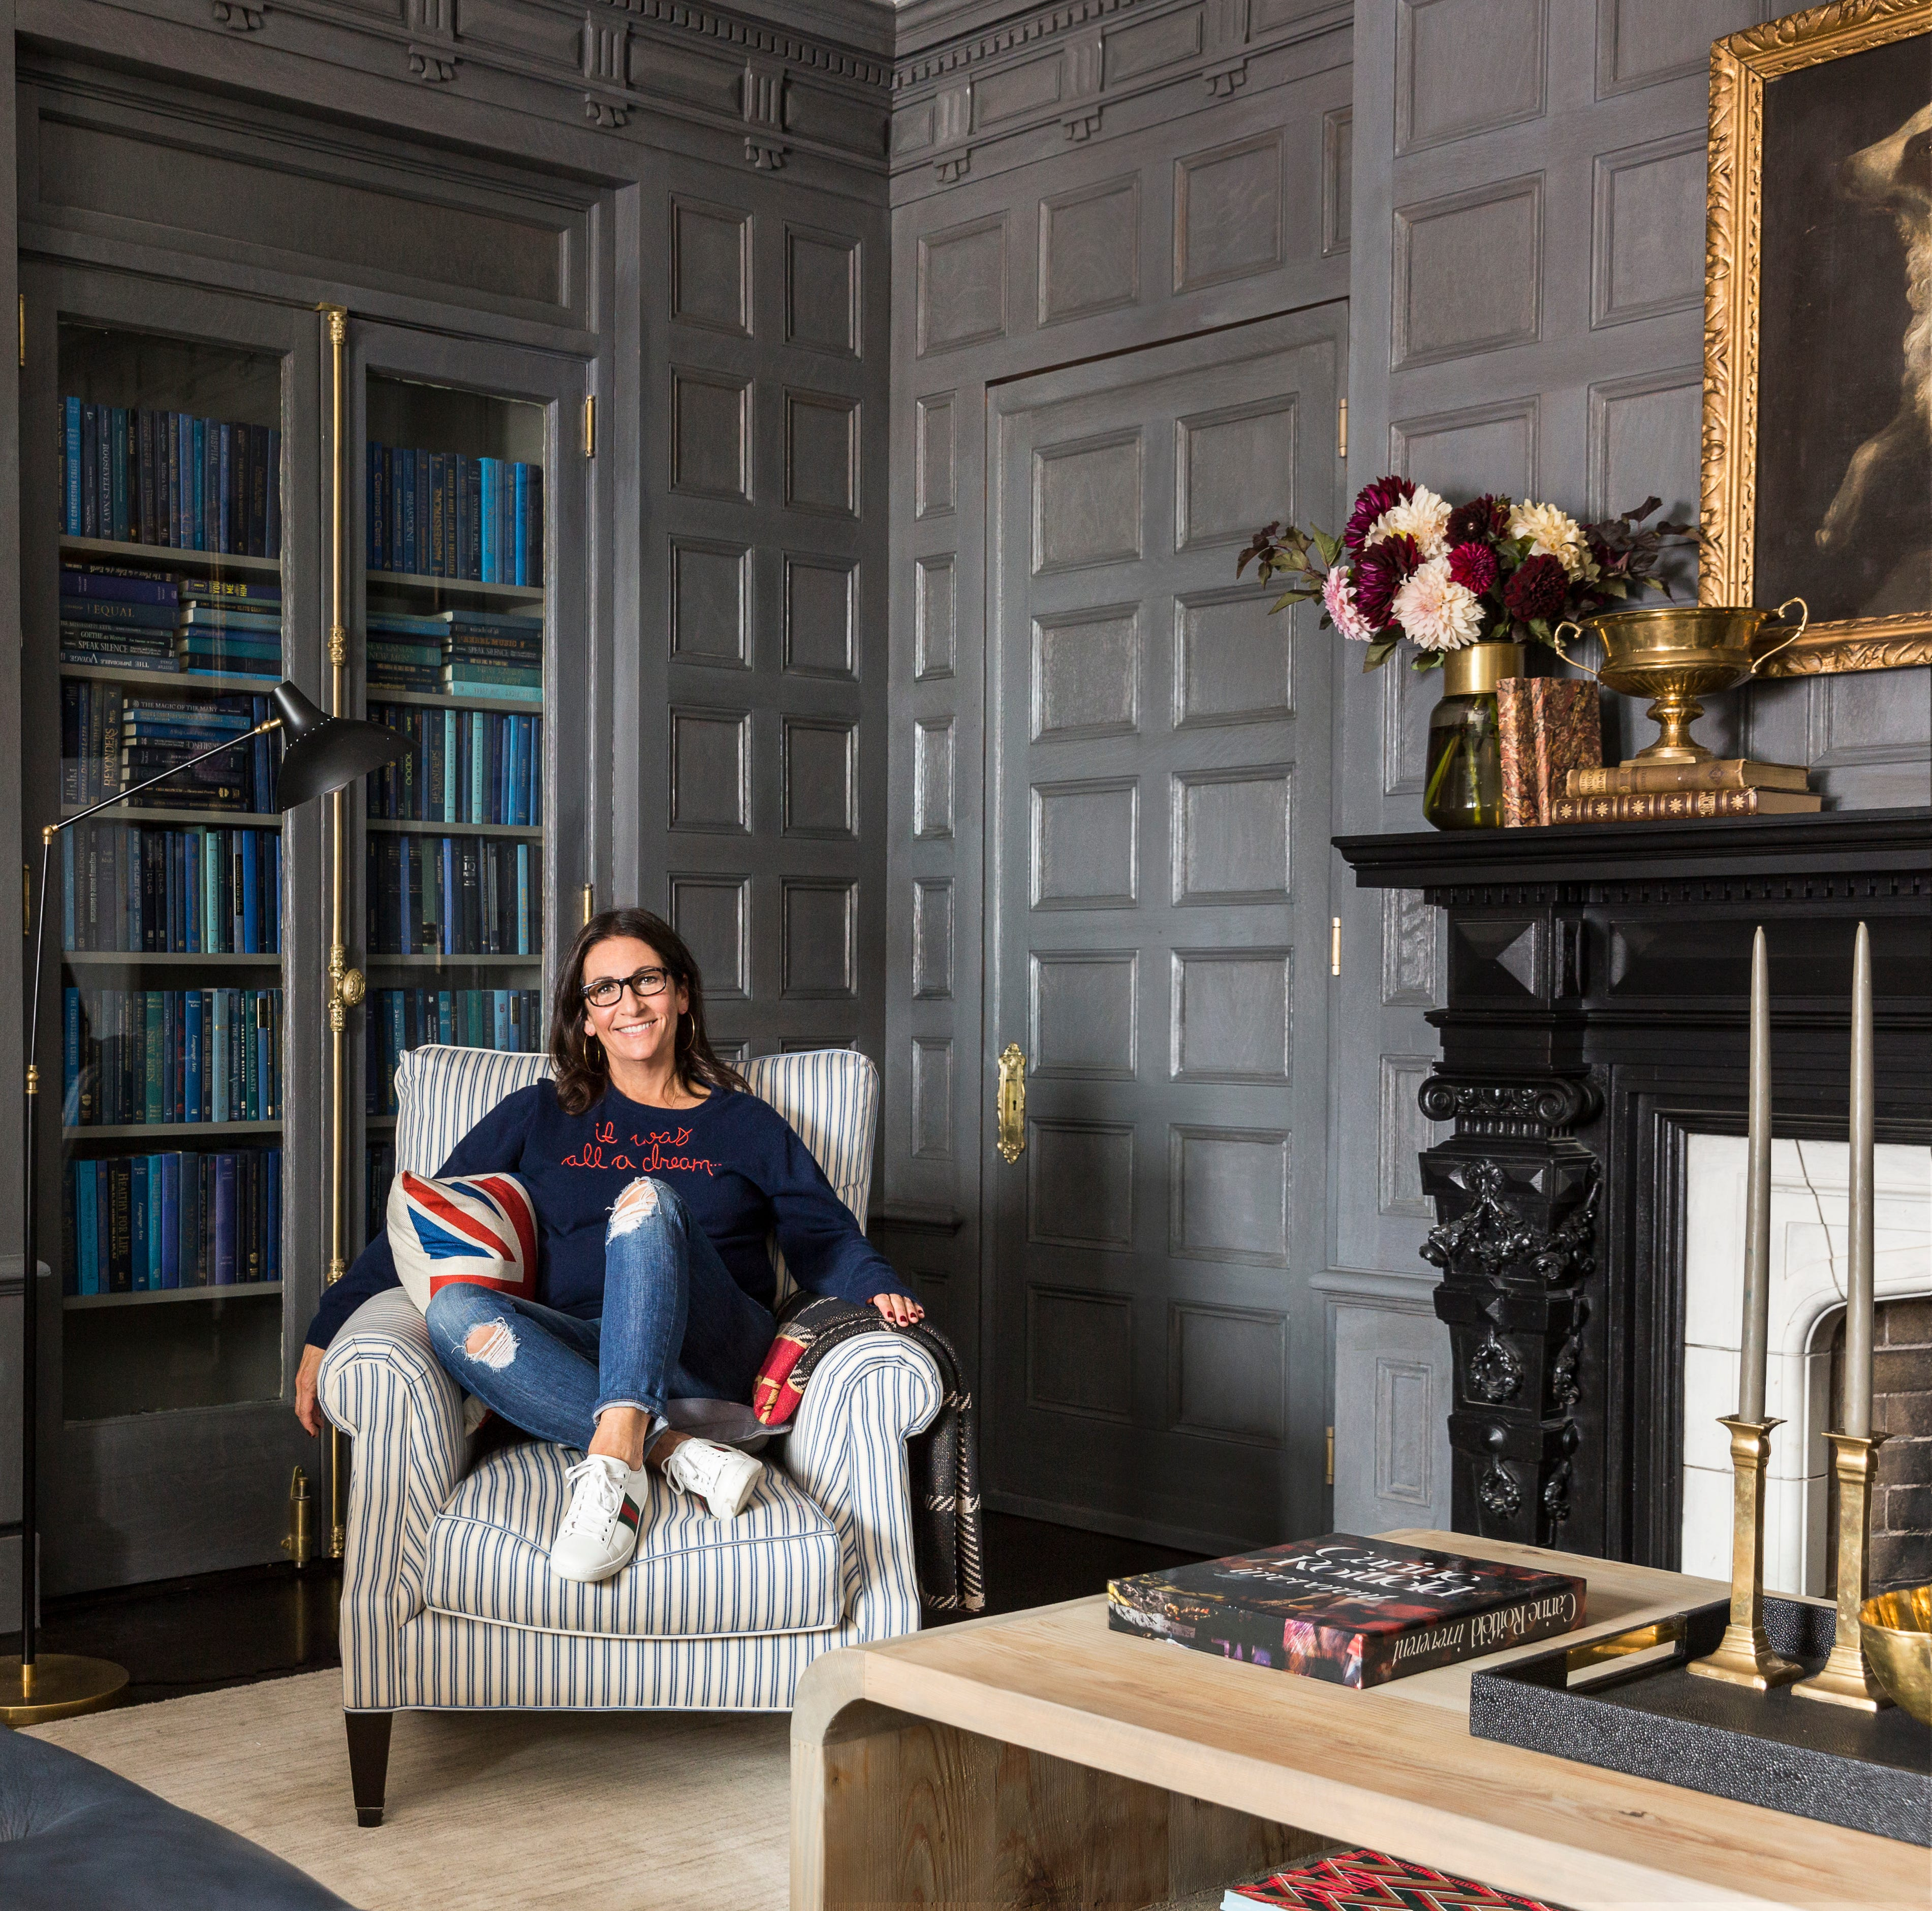 Makeup maven Bobbi Brown runs her inn, The George in Montclair, as a home away from home